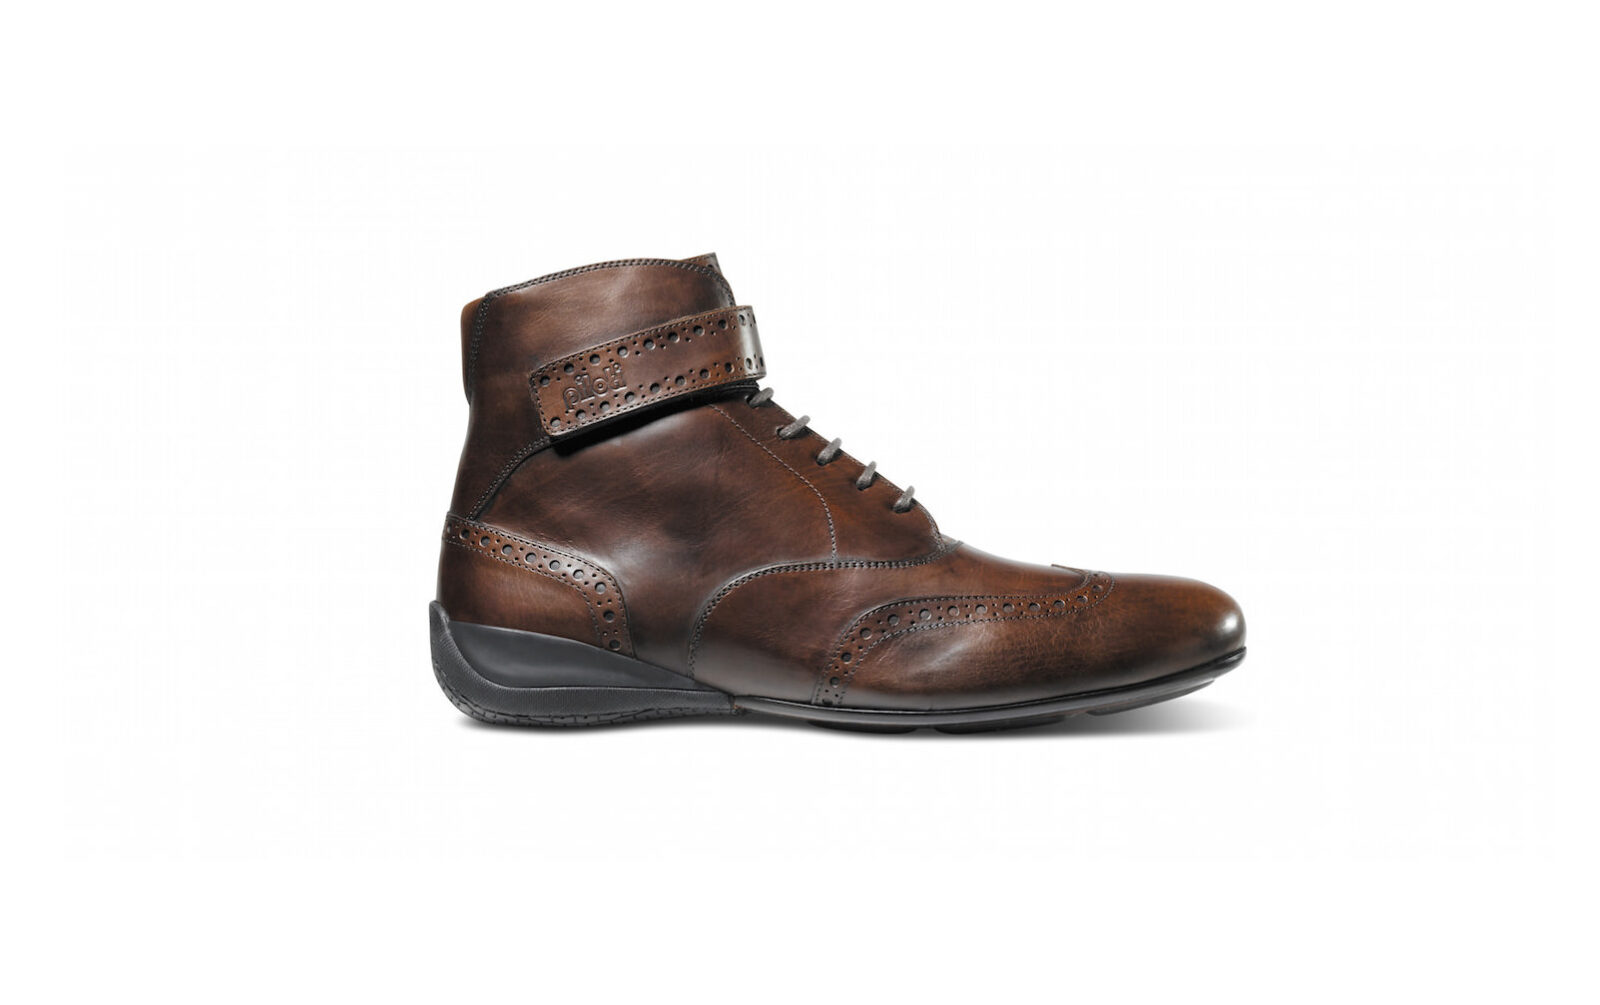 Piloti Campione Driving Boots 1600x1005 - Piloti Campione Driving Boots - Tan Leather